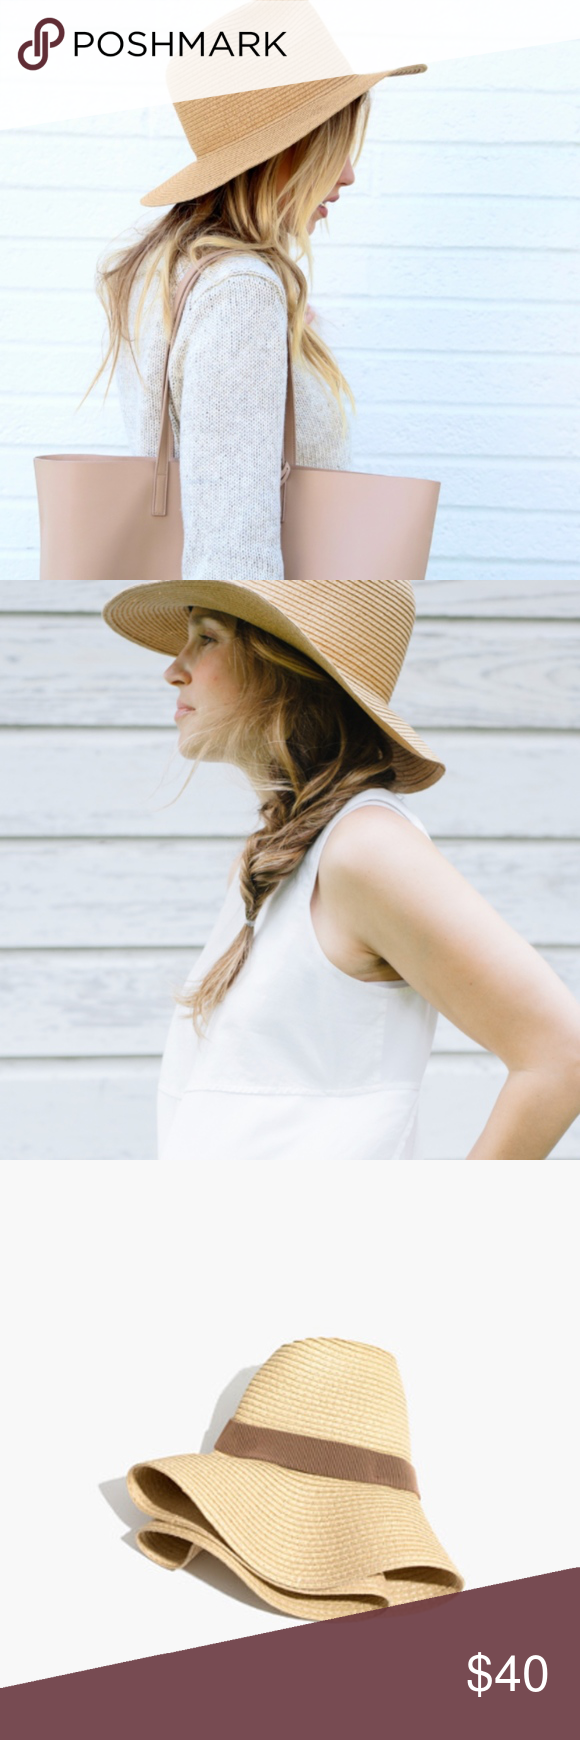 6b5ce175479 Madewell NWT Packable Straw Hat Mesa Tan A stitched straw floppy hat that  rolls up like